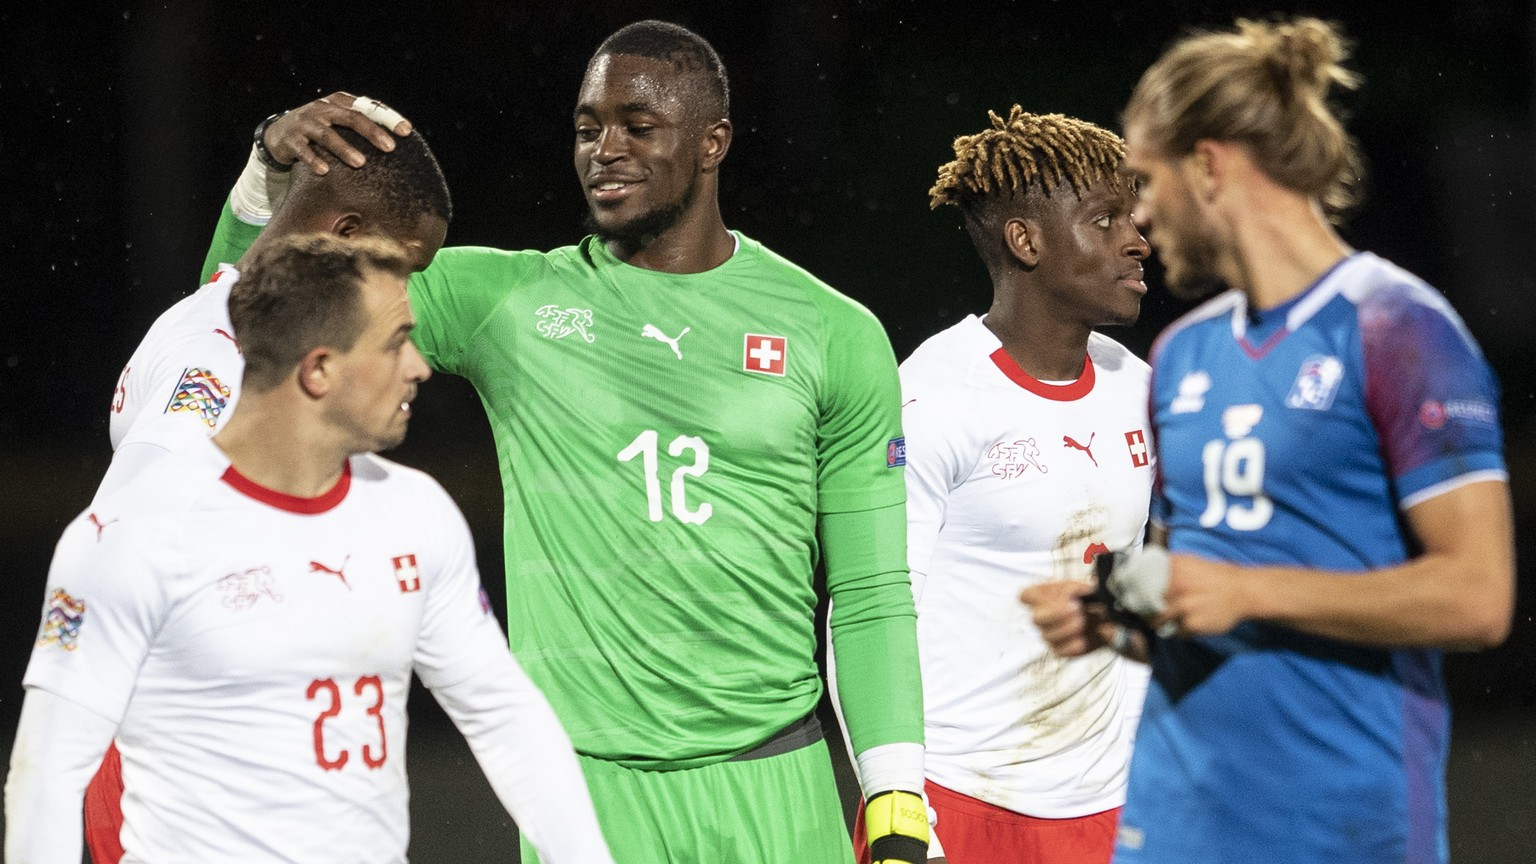 Switzerland's goalkeeper Yvon Mvogo, center, reacts after the UEFA Nations League soccer match between Iceland and Switzerland at the Laugardalsvoellur stadium in Reykjavik, Iceland, on Monday, October 15, 2018. (KEYSTONE/Ennio Leanza)